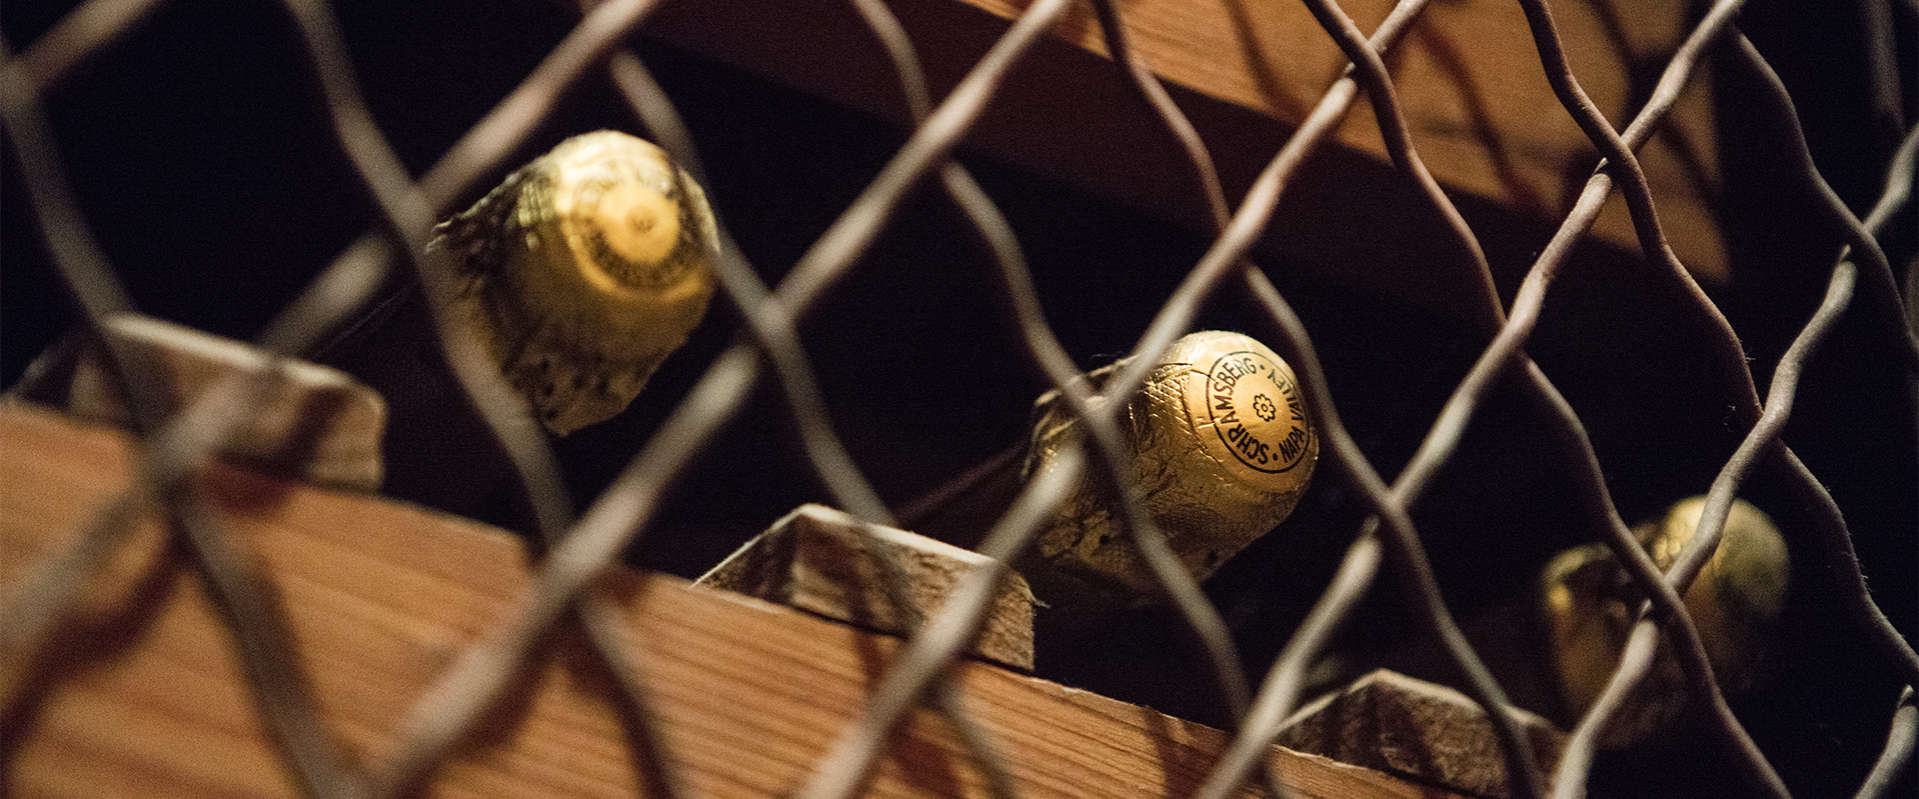 Schramsberg sparkling wine stored on wine racks in the Davies room at visitors center